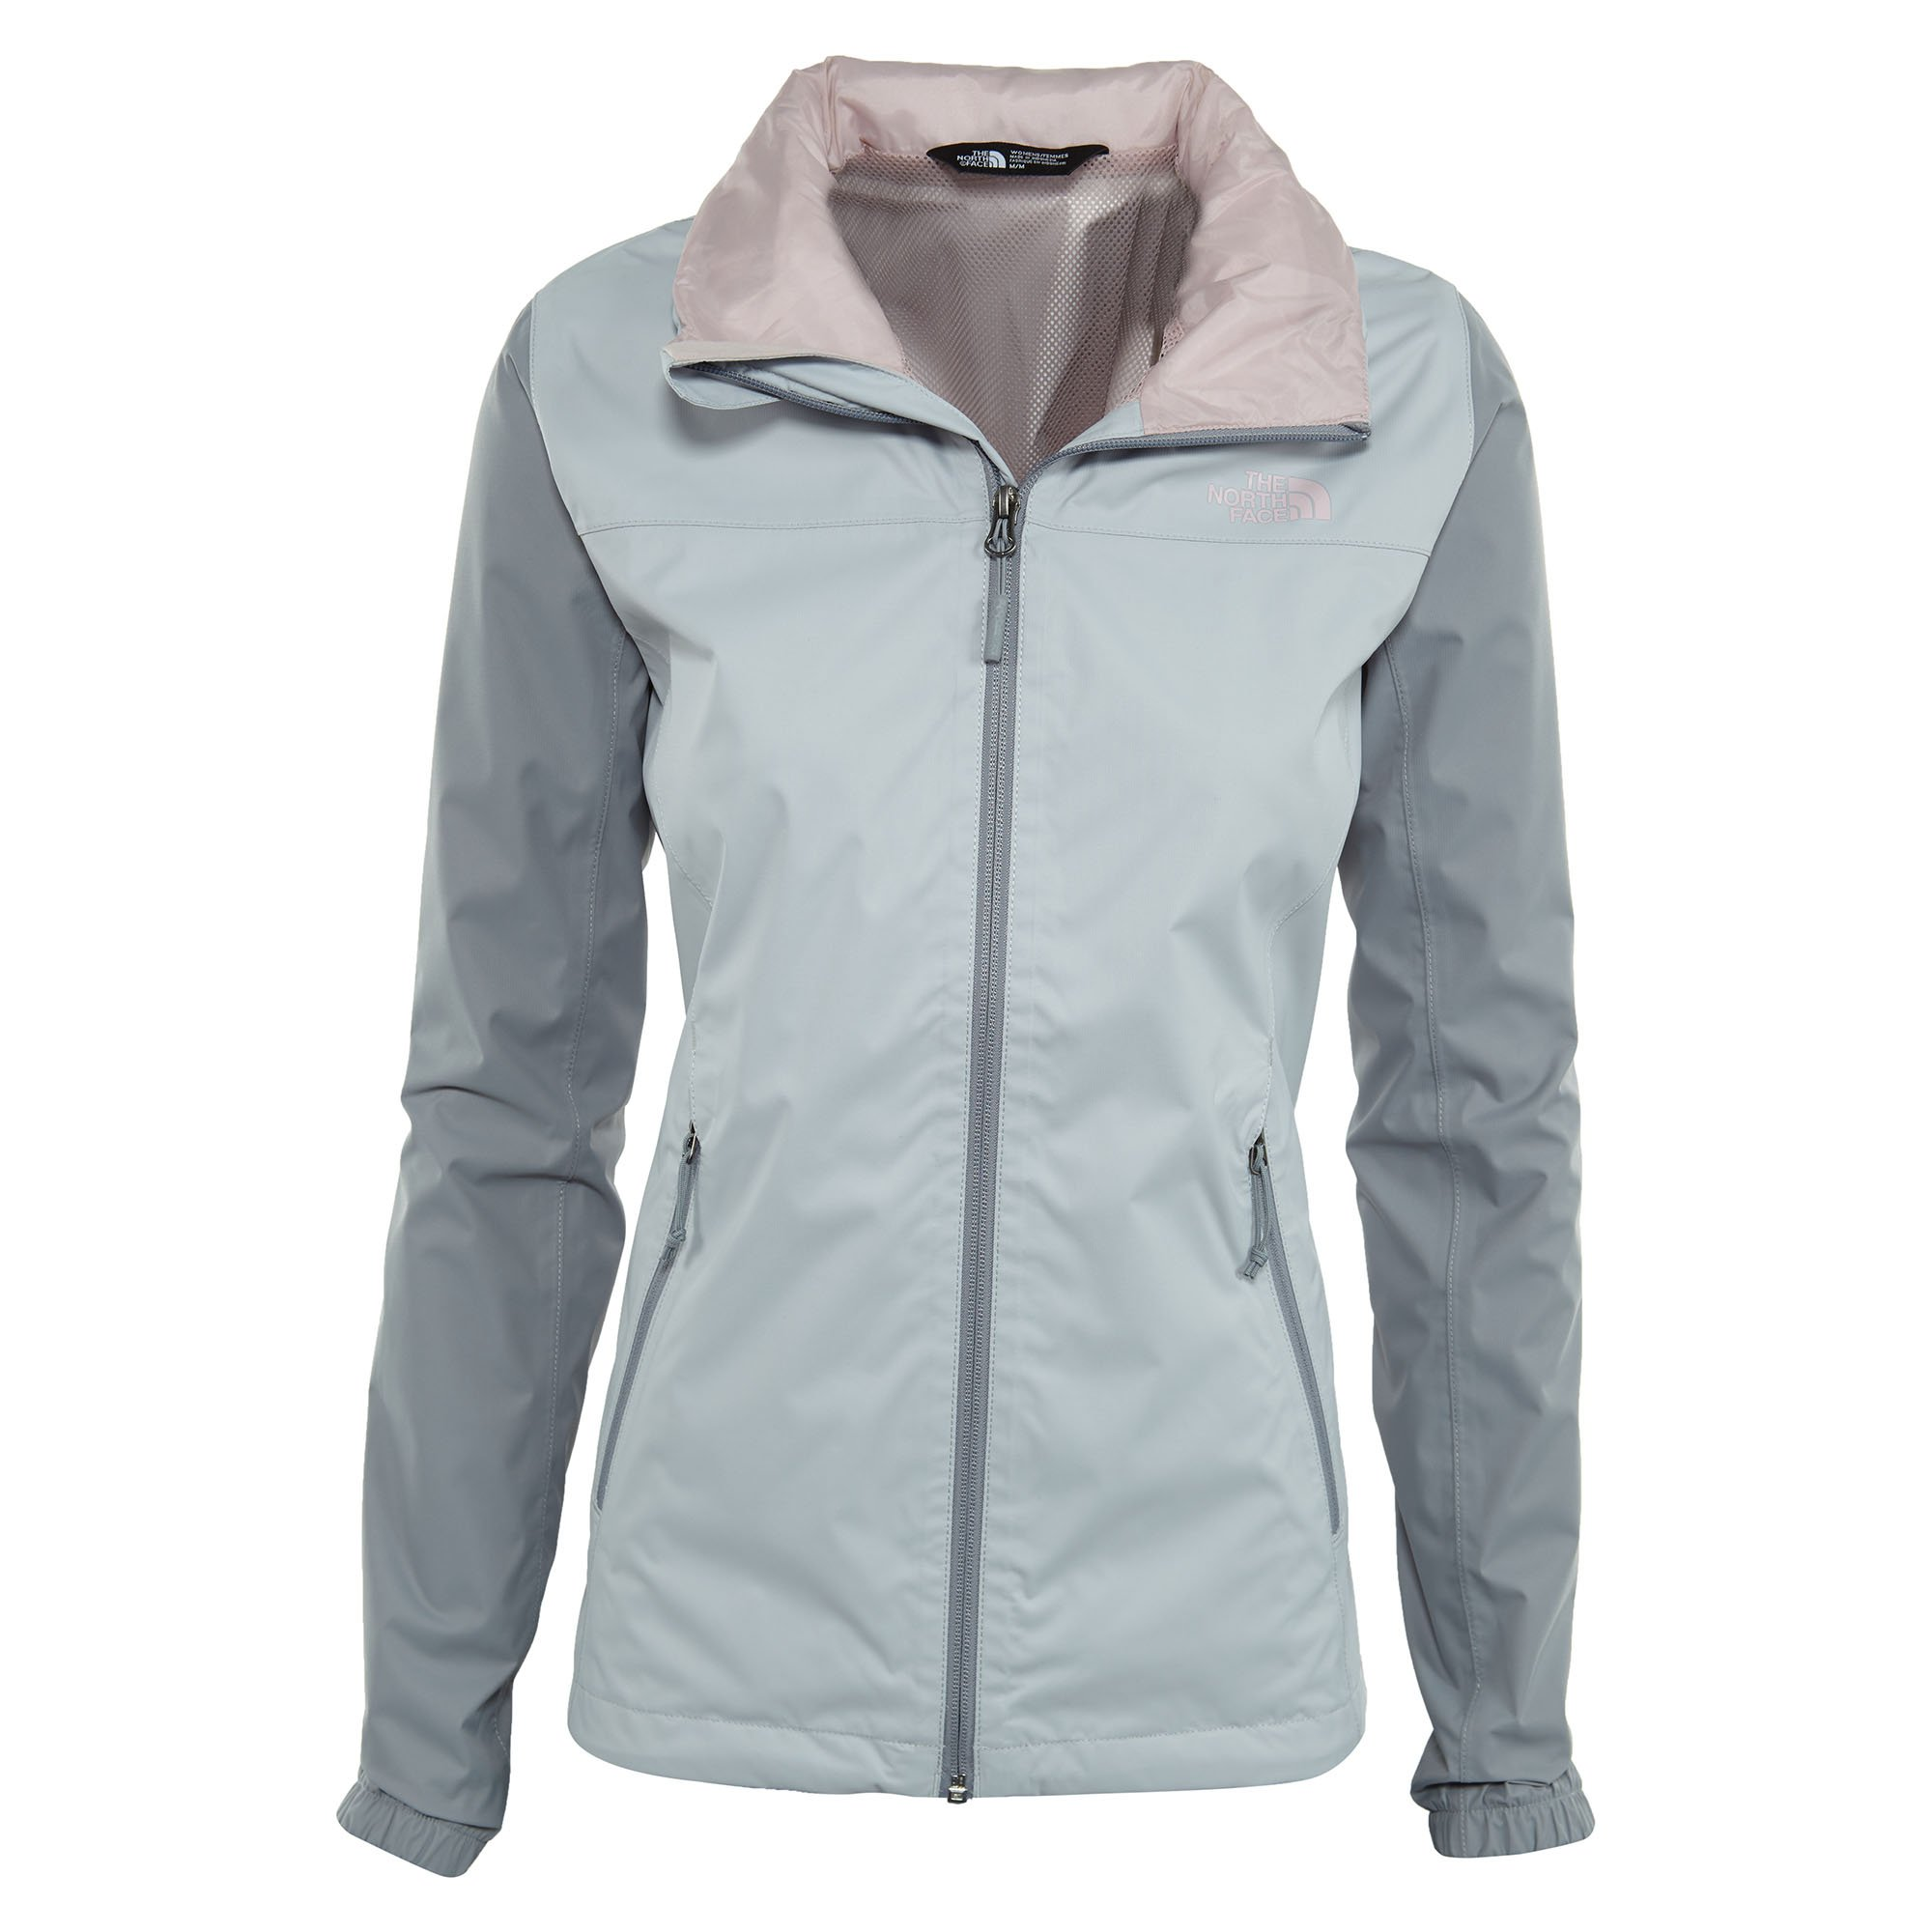 The North Face Resolve Plus Jacket Womens Style: CUS0-W6X Size: XL